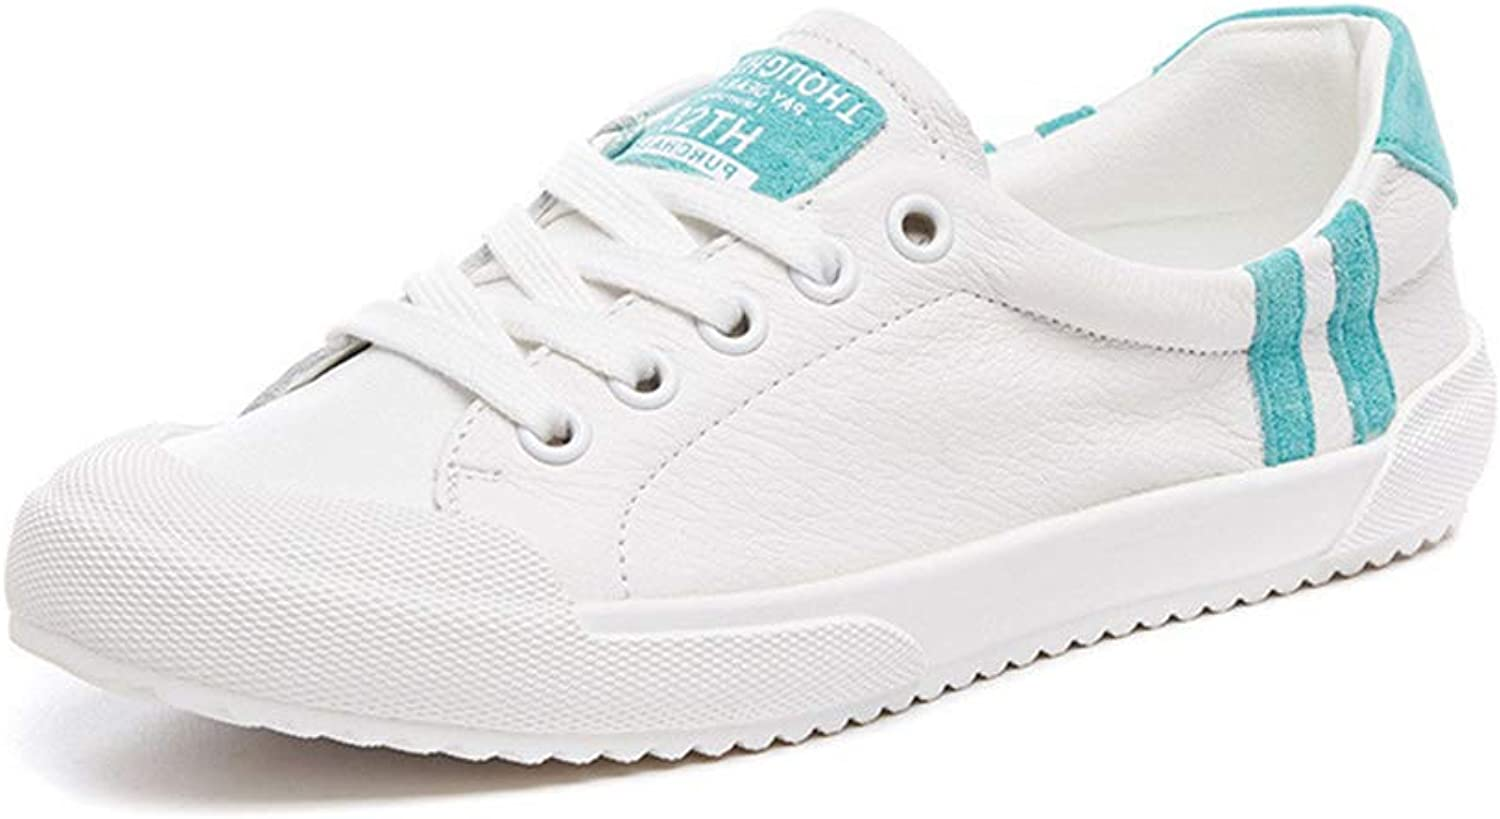 Women's Deck shoes Sports shoes Leather Low-Top Casual shoes Spring Fall Outdoor Lace Up Walking shoes,A,35